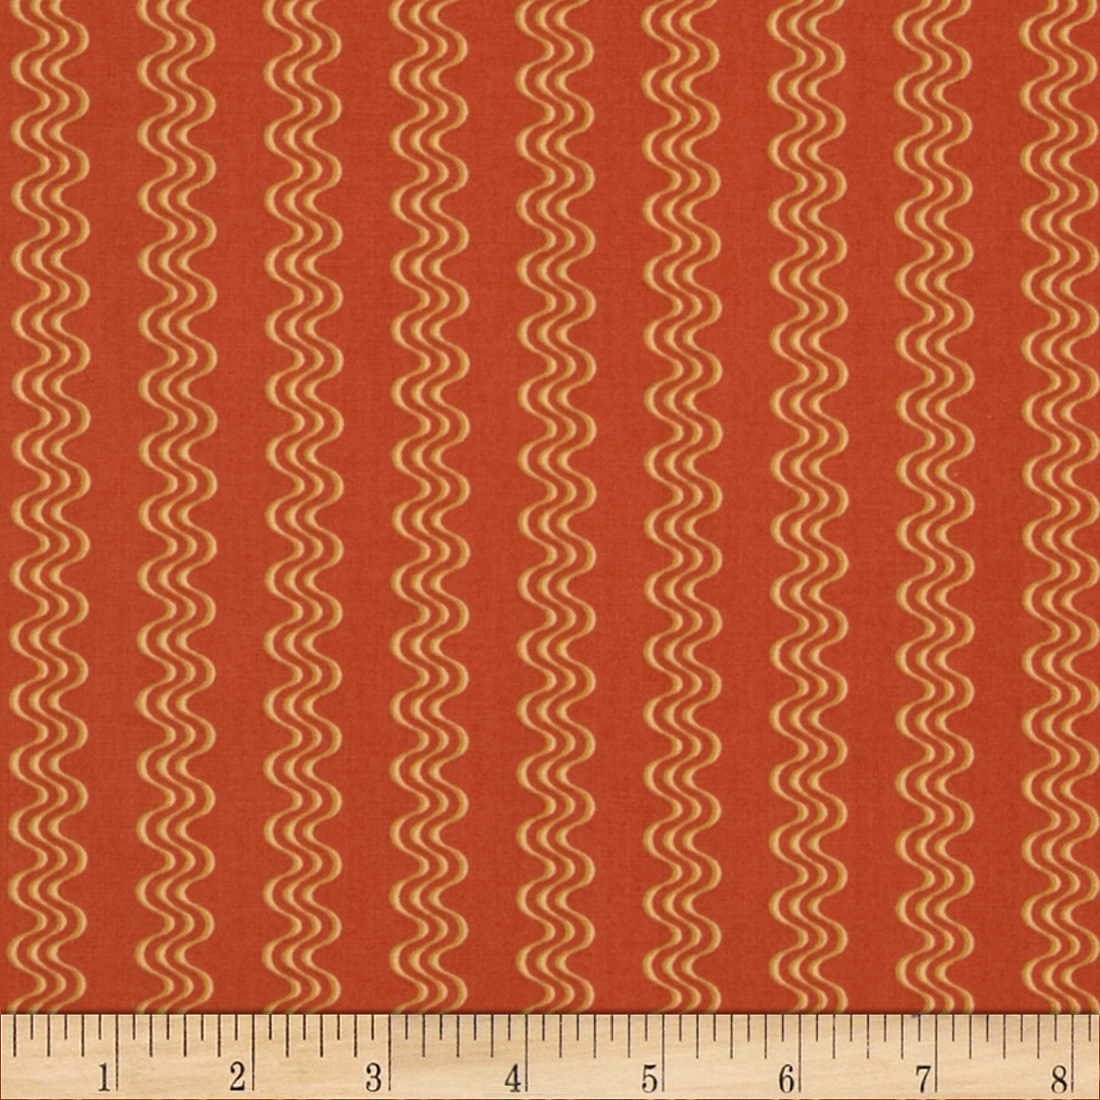 Retro Geo Polka Waves Orange Fabric